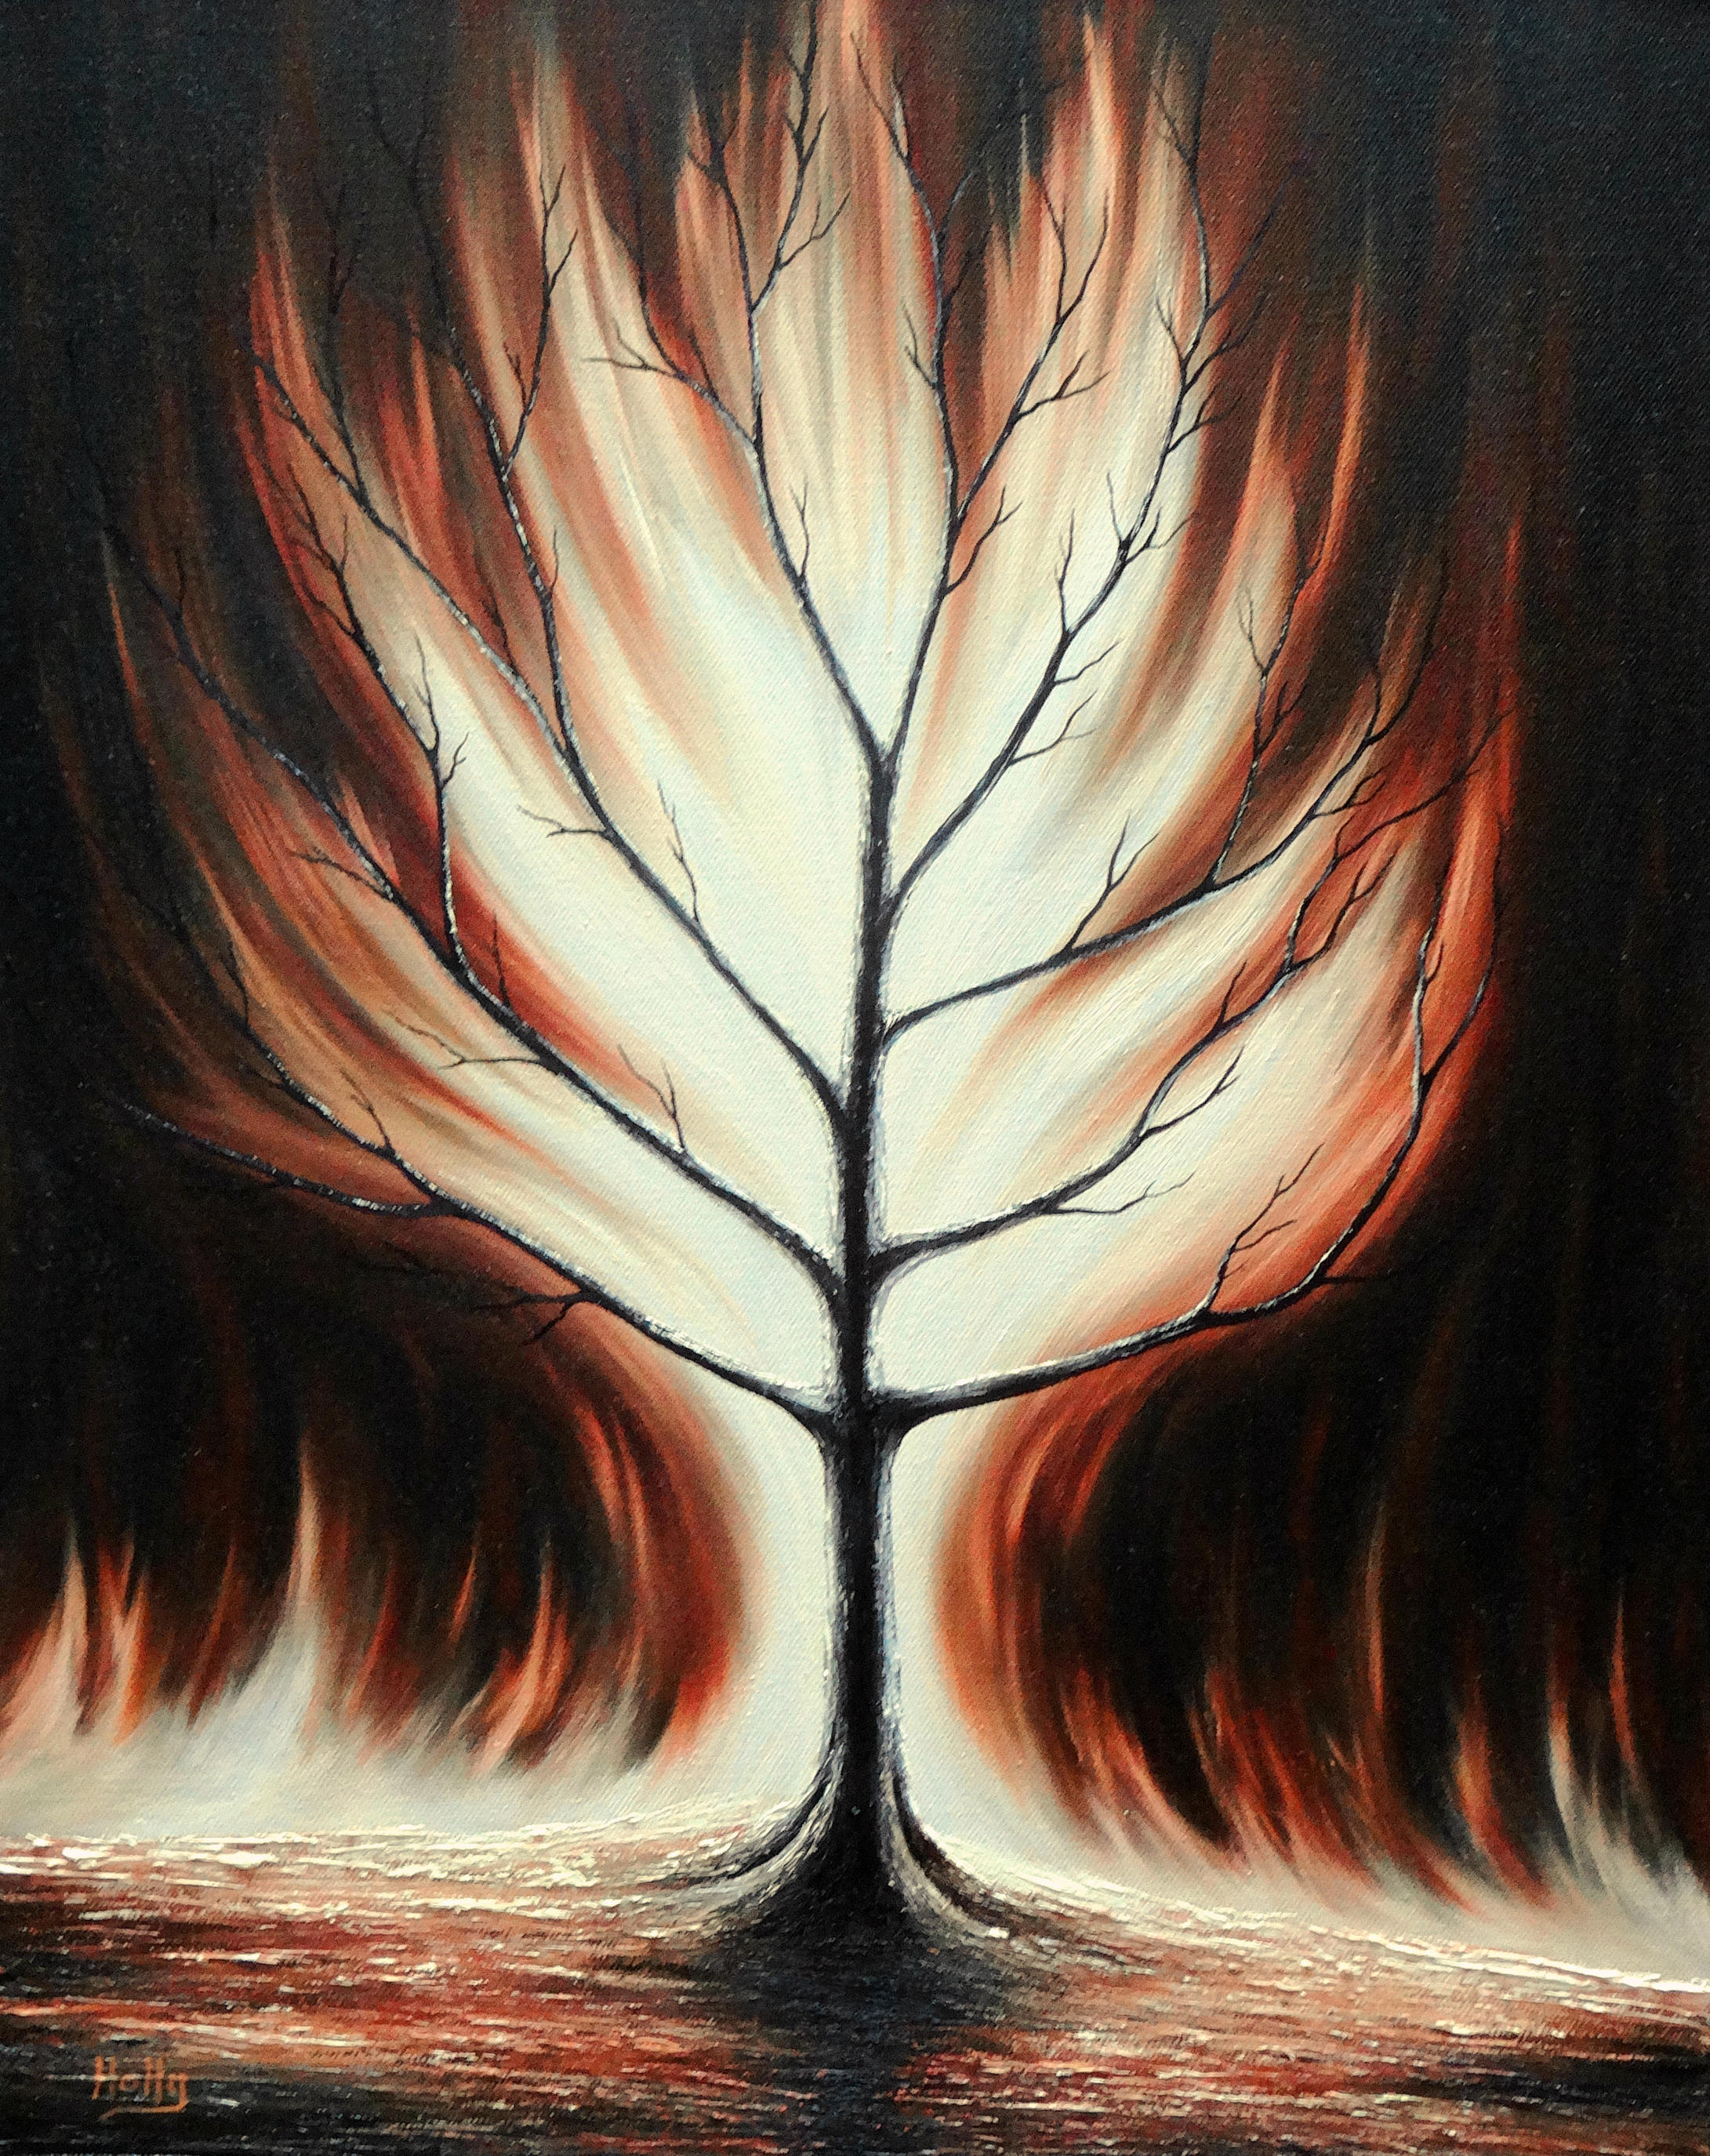 The Arbor Flame by NathanHolly